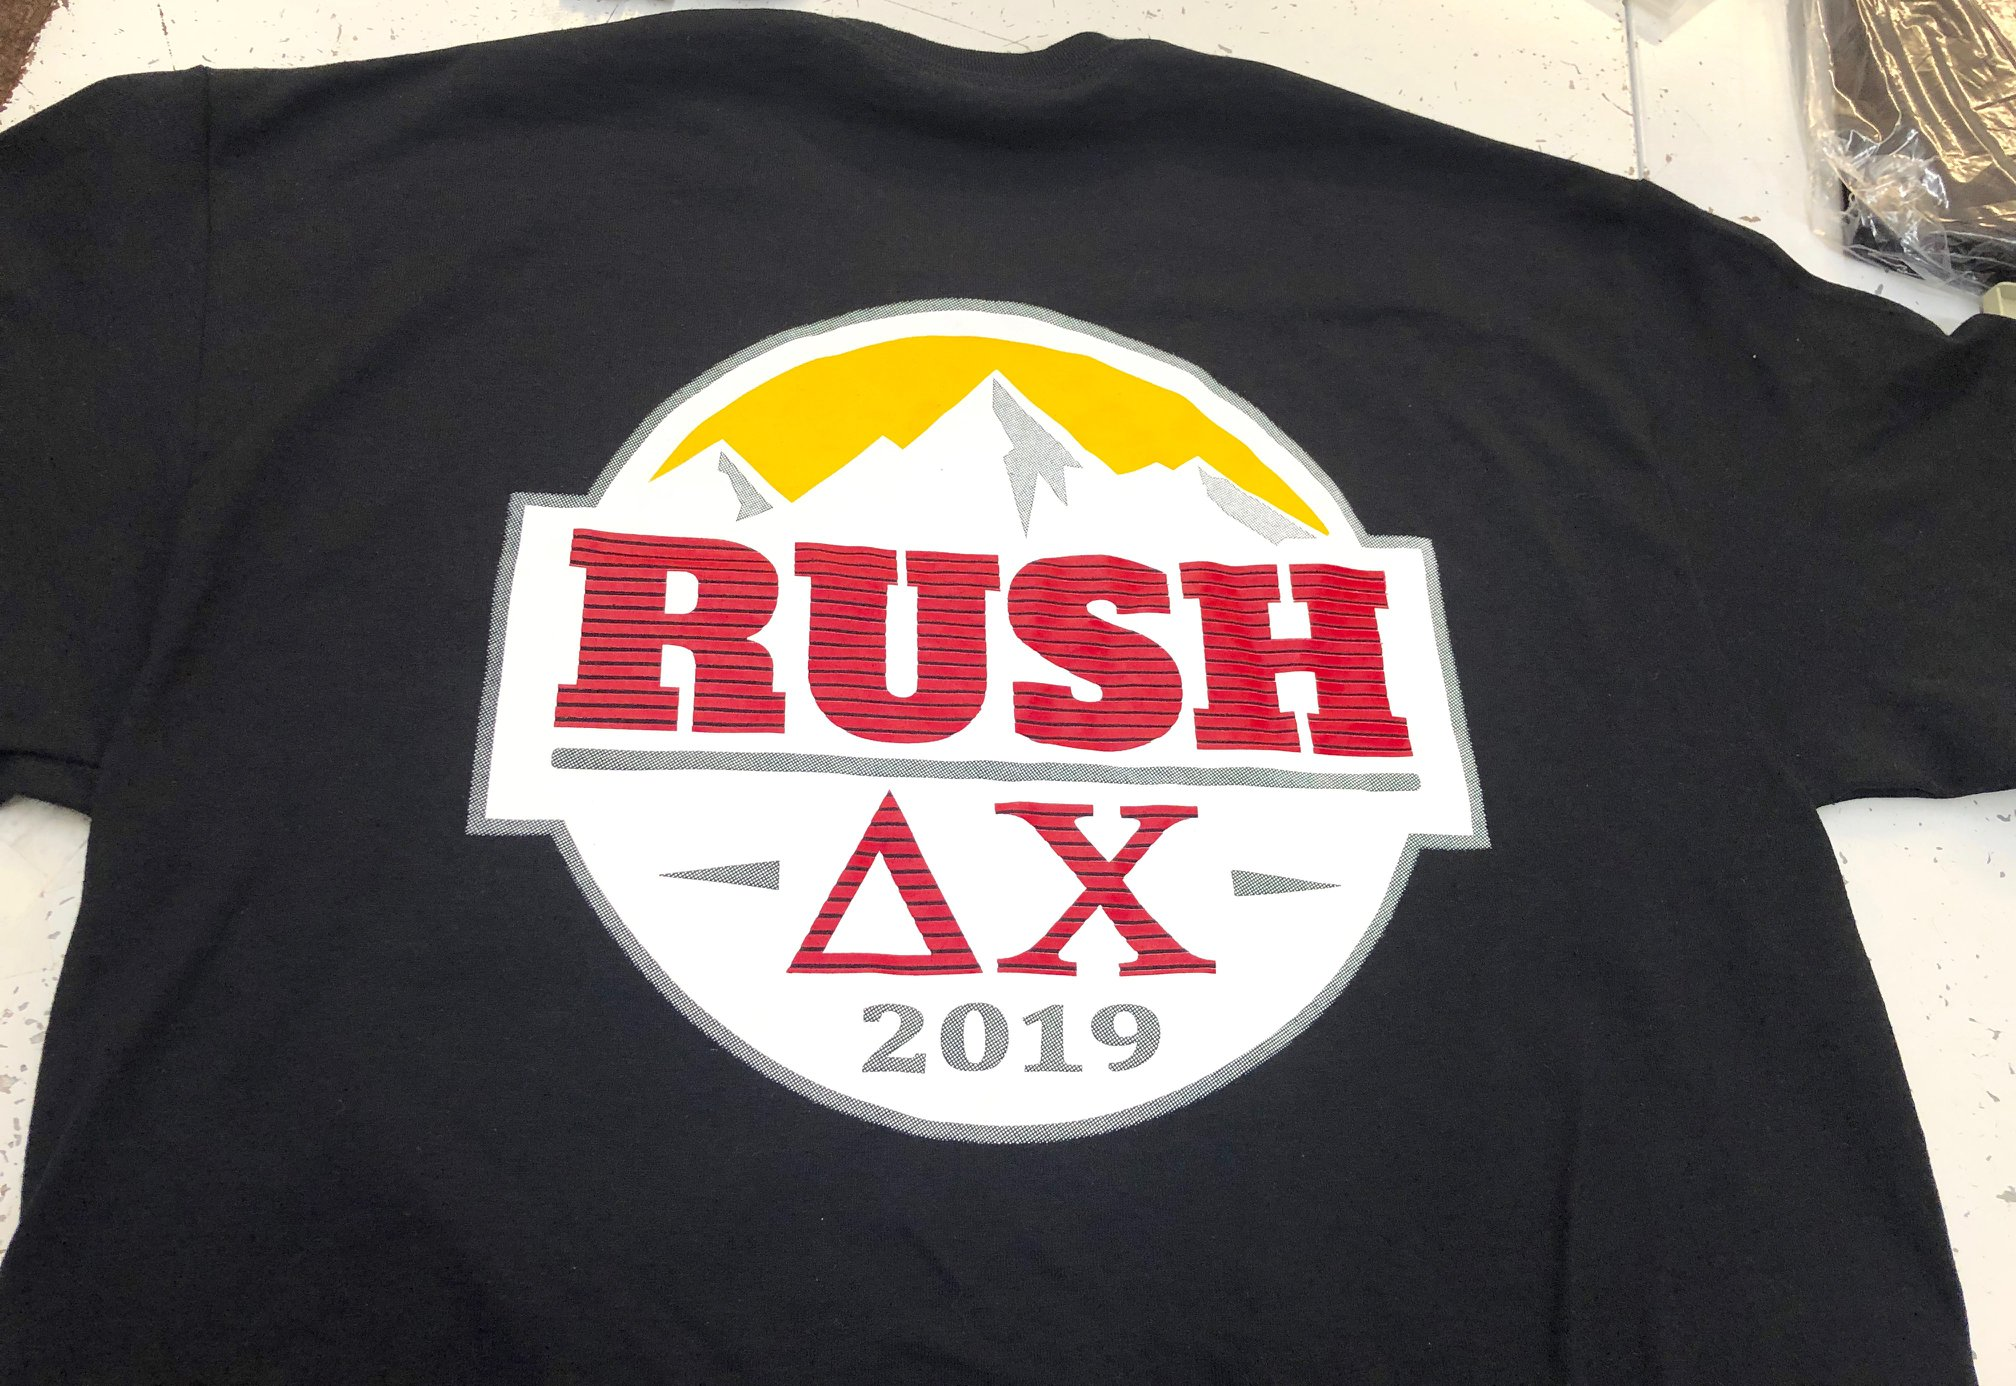 Multi colored delta chi fraternity screen print on a black t-shirt